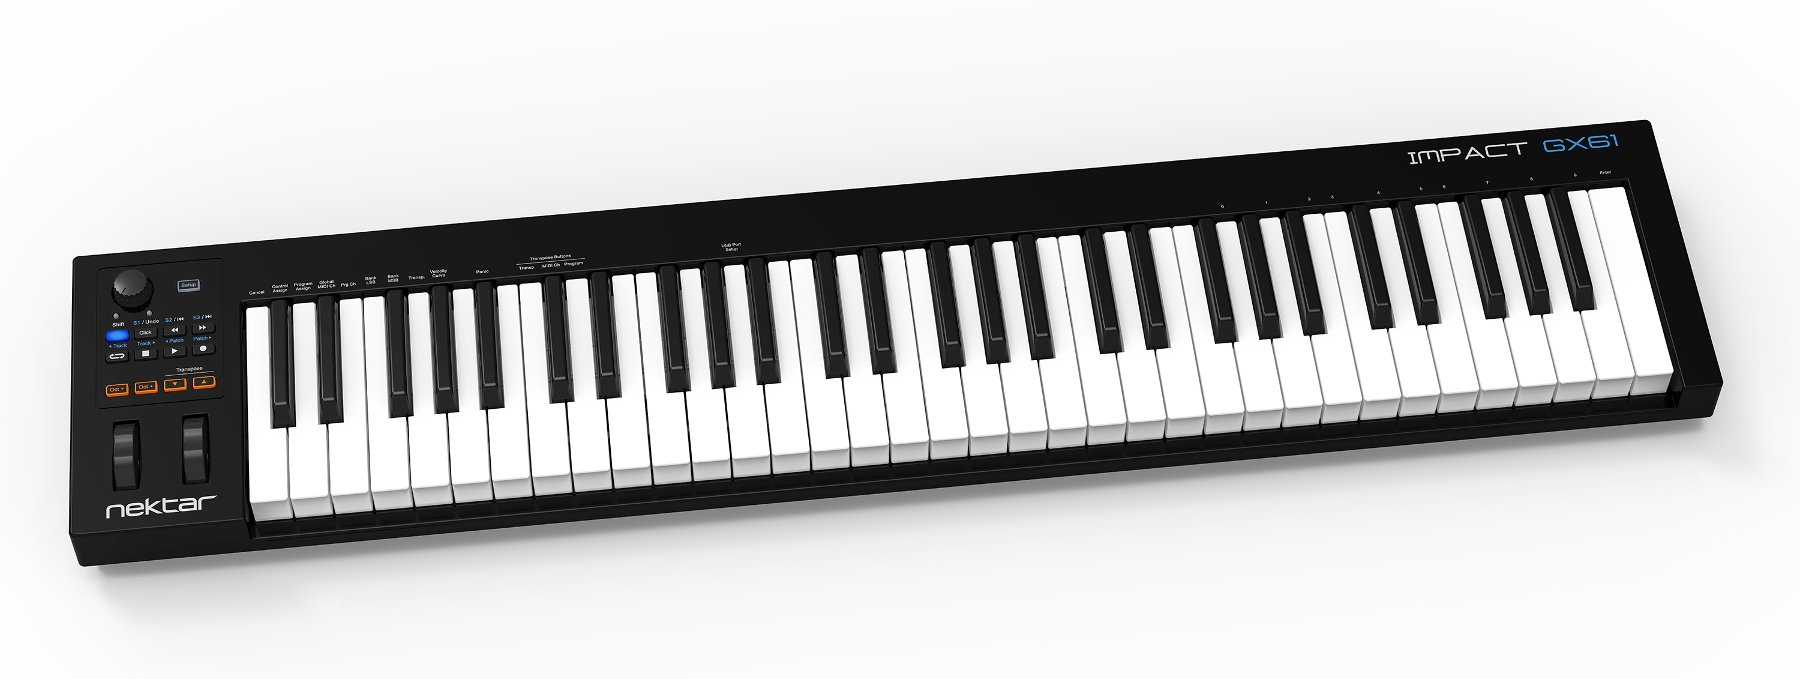 61-Key USB MIDI Controller with DAW Integration